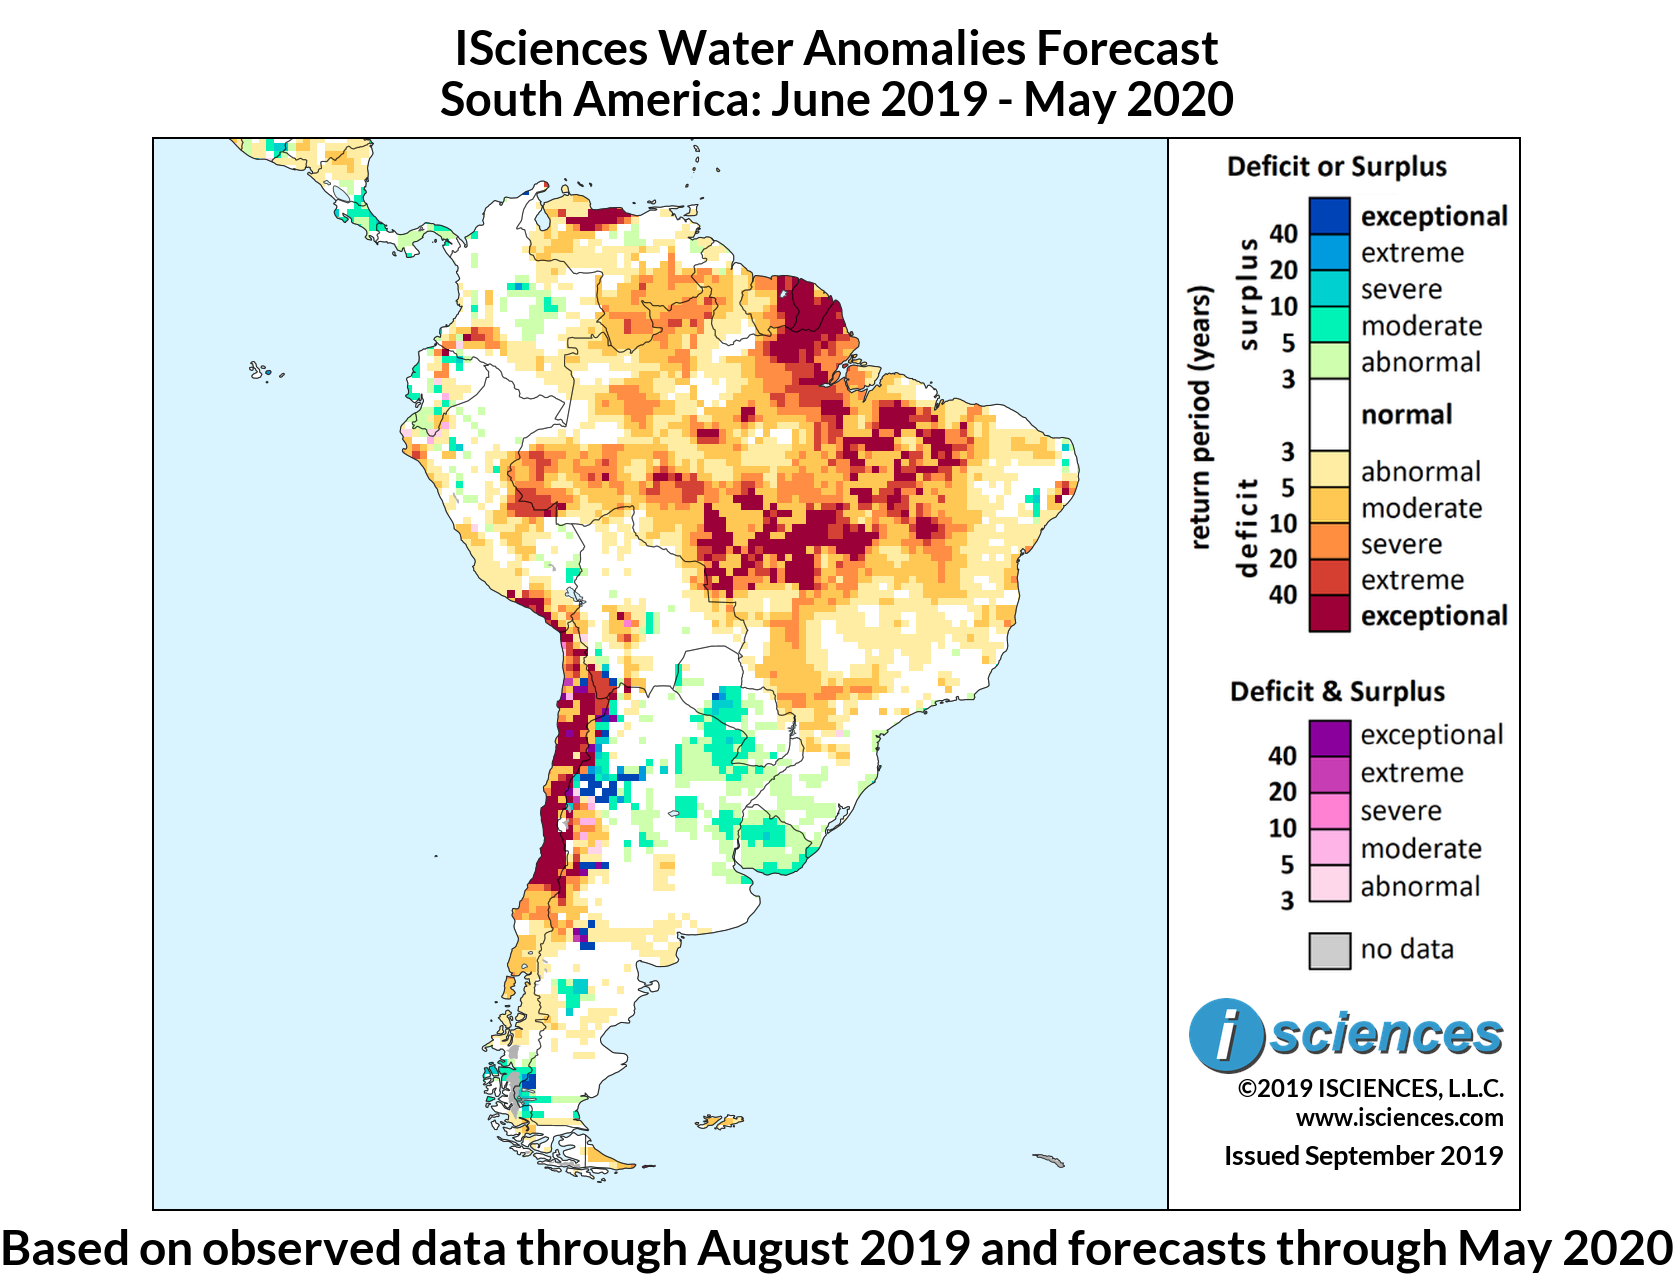 ISciences_South_America_Composite_Adjusted_201906-202005_12mo_panel.png